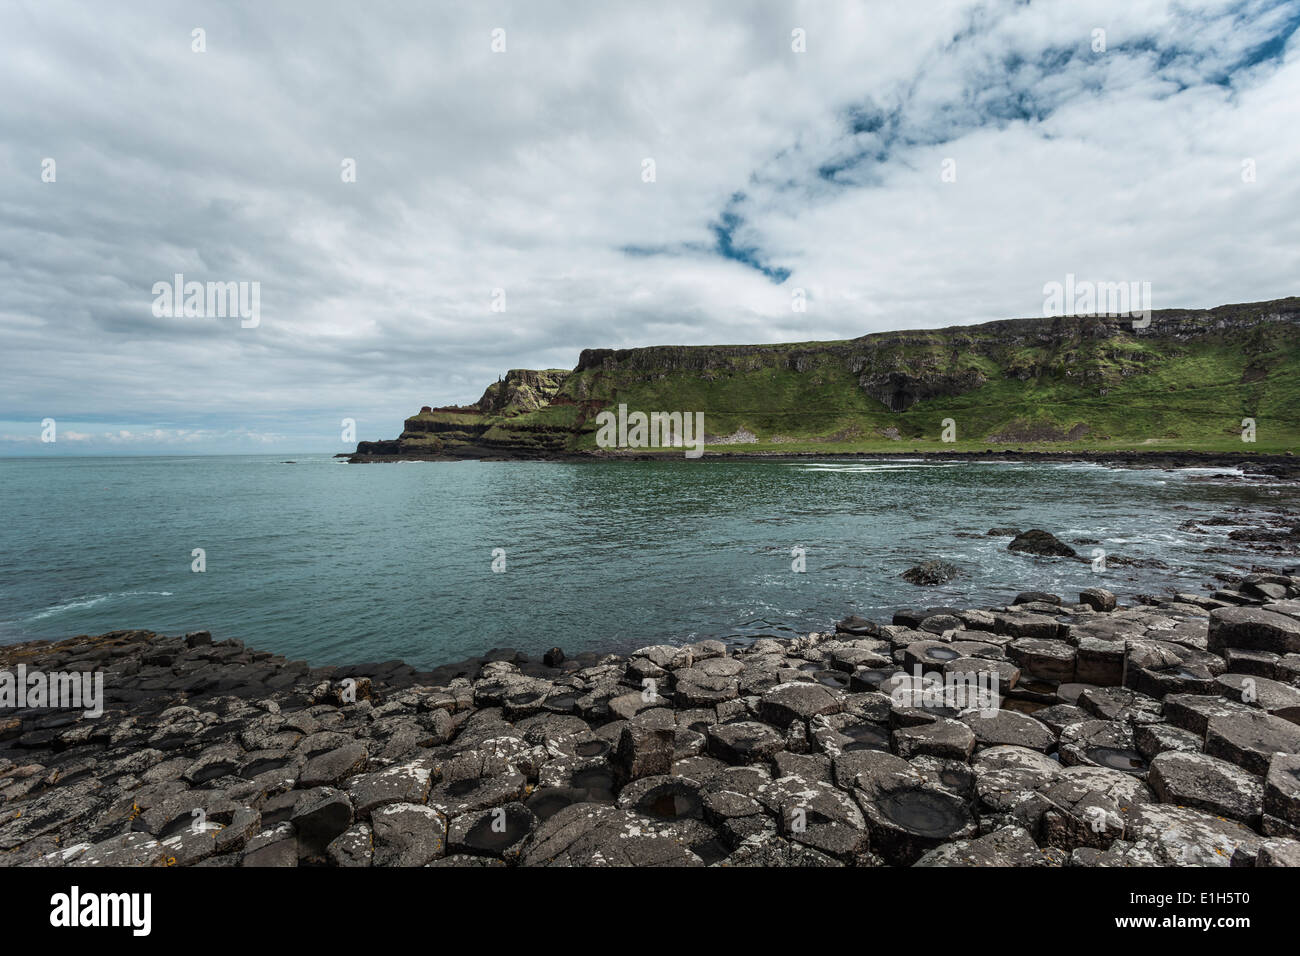 View of Giants Causeway, Bushmills, County Antrim, Northern Ireland, UK - Stock Image